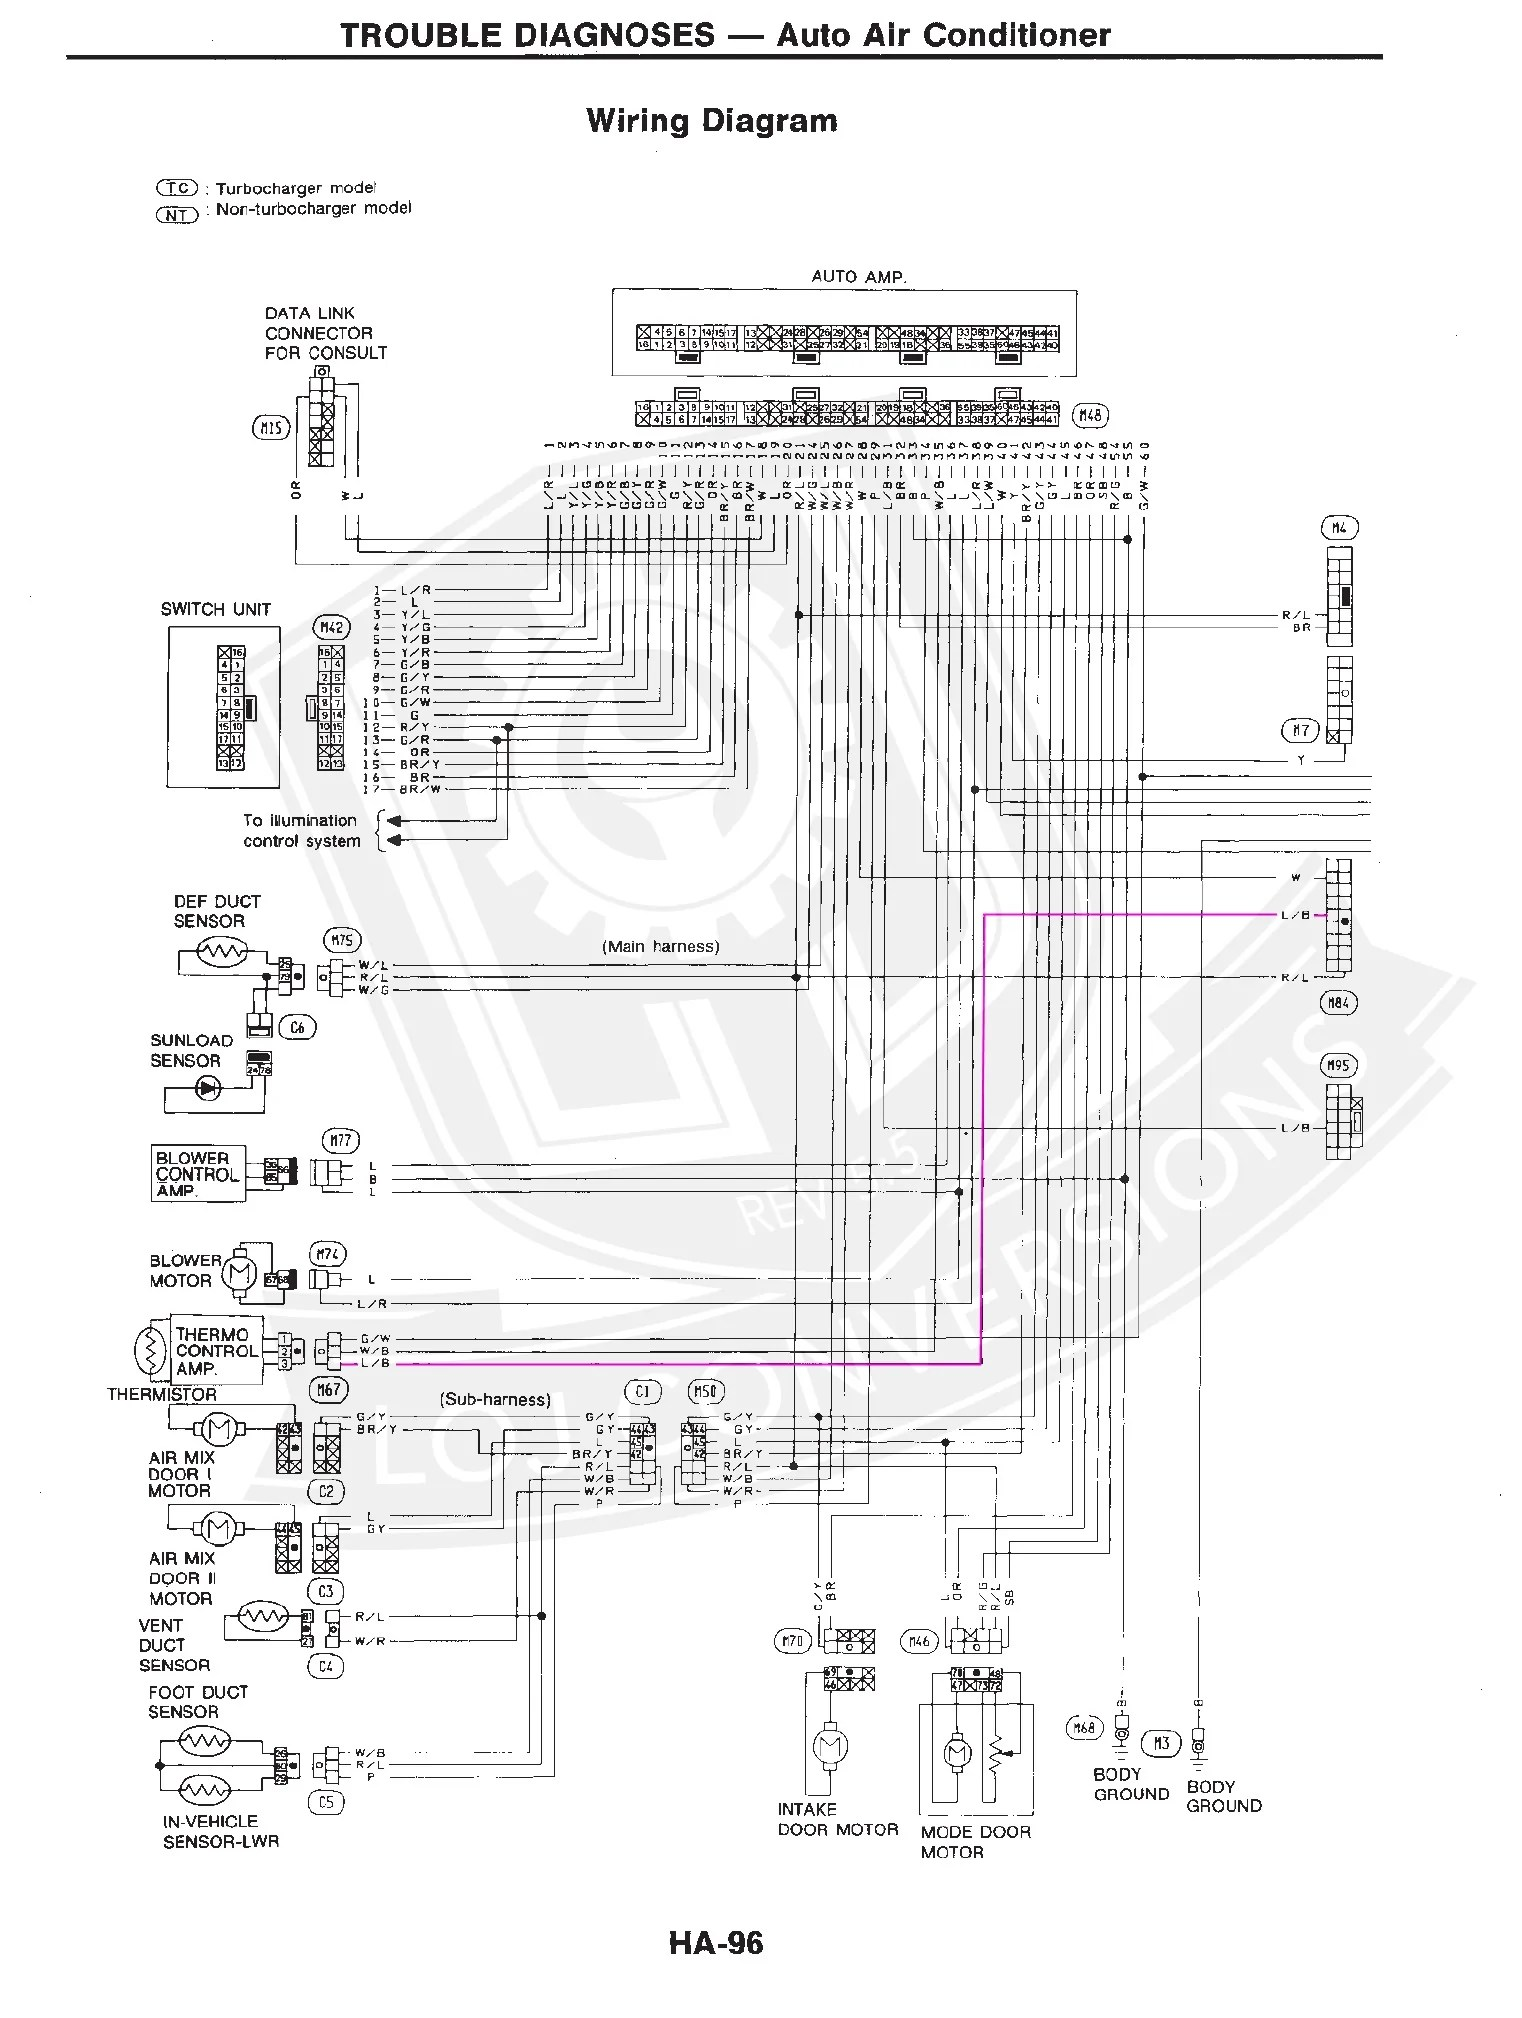 small resolution of diagram likewise 1990 nissan 300zx wiring harness diagram also 1991 wiring diagram also 1990 nissan 300zx engine wiring harness further